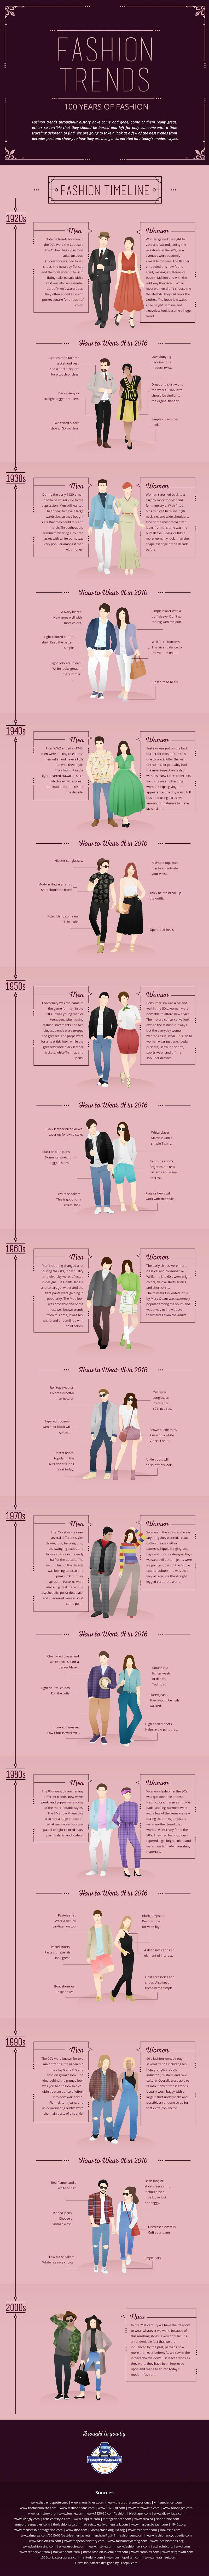 Fashion over the years have been fun. There is no denying that fashion has changed a lot over the years. We have seen so many styles come and go. Trying to keep up with the chaos that is the fashion world can be quite difficult. In a blink of an eye those sweet new pants you bought could be yesterday's news. Fear not! Check out this infographic to see 100 years of fashion and how to wear it in 2016